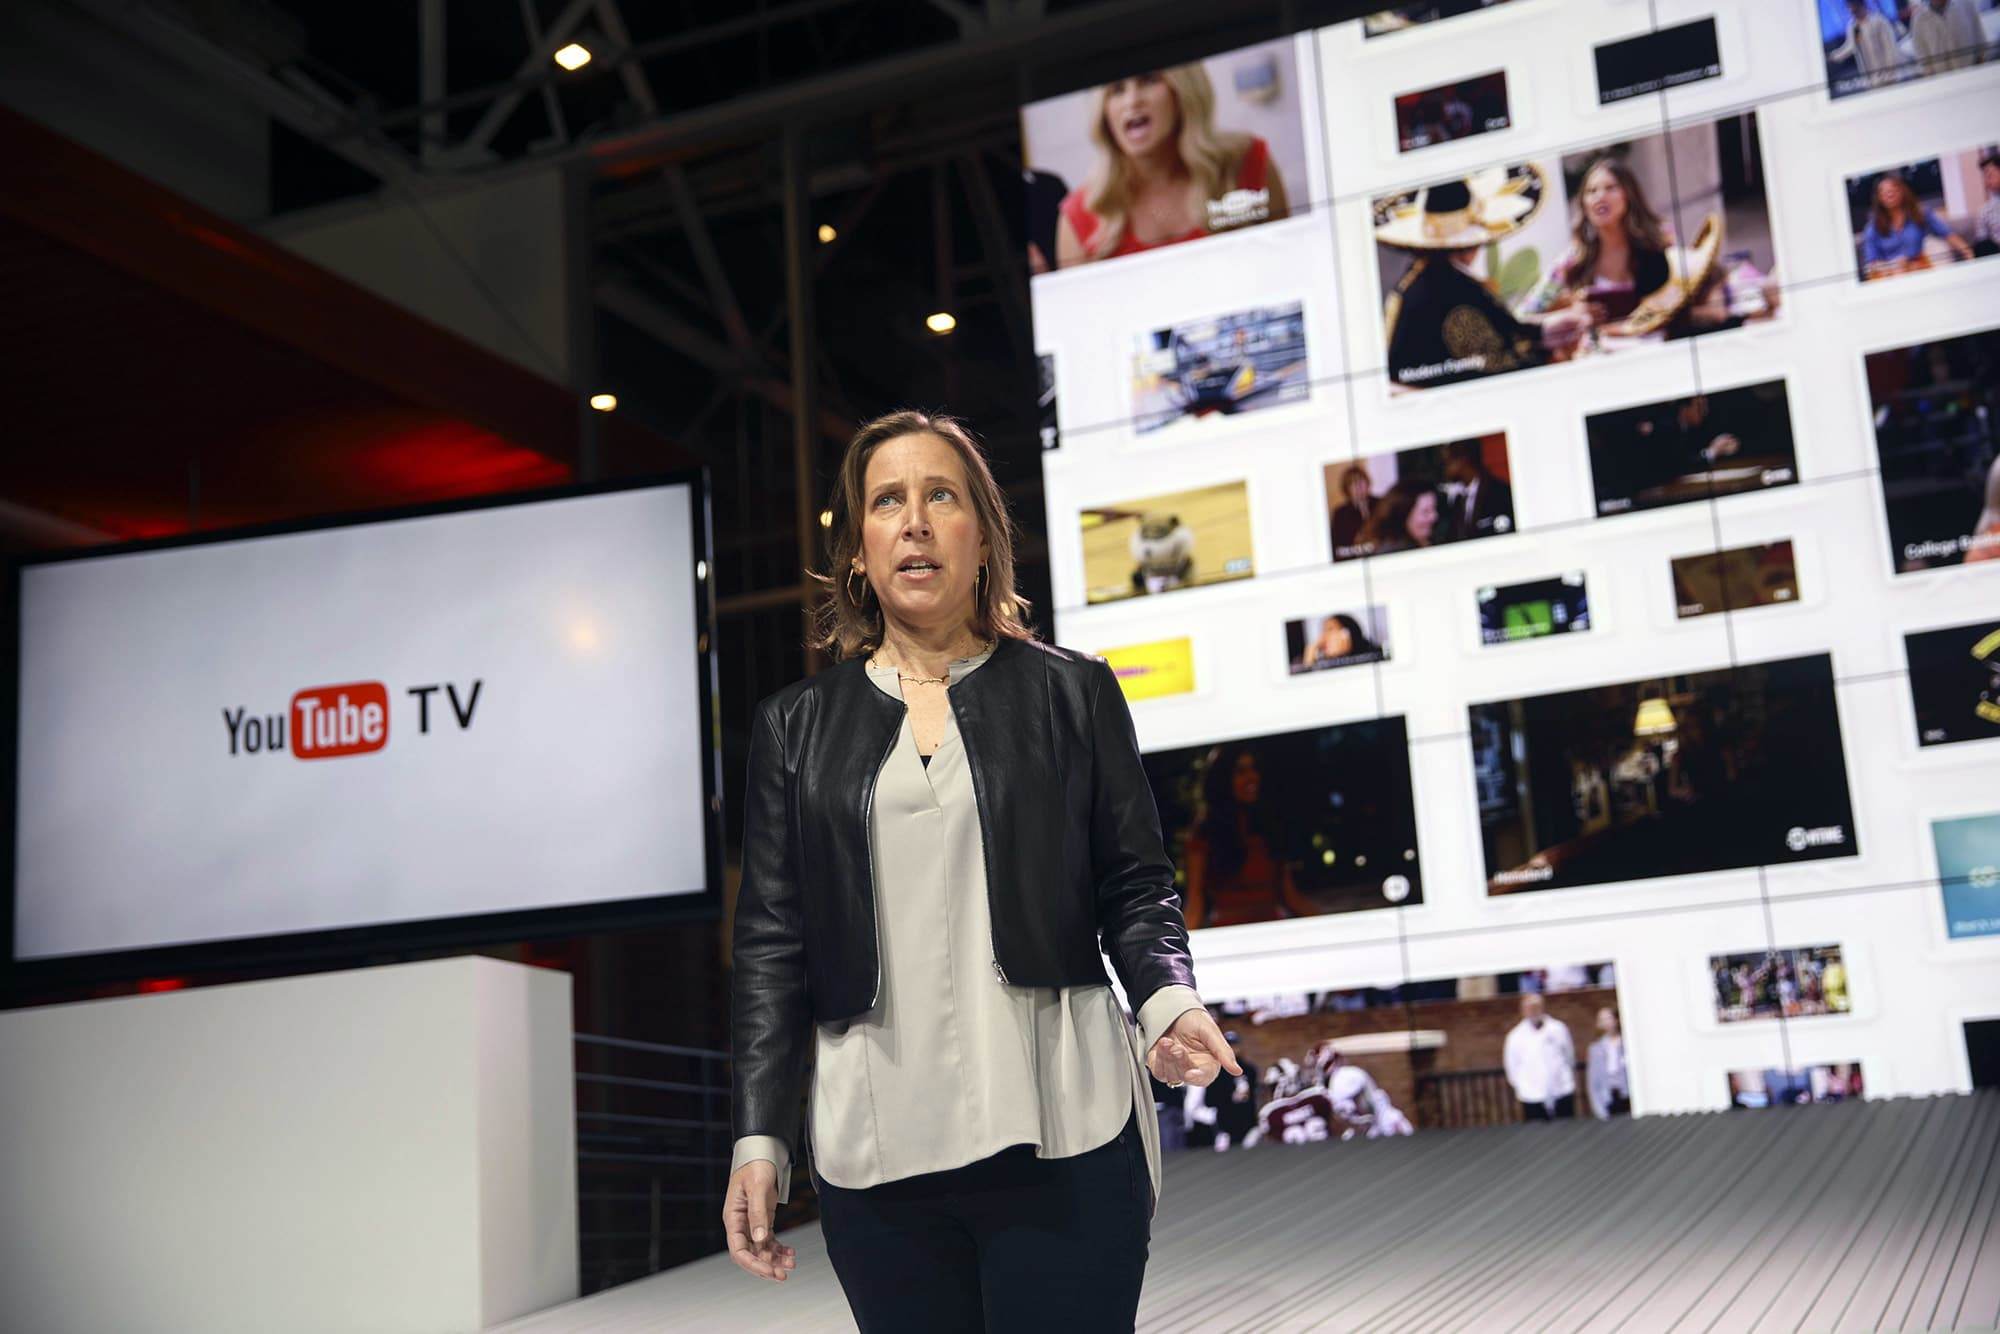 YouTube is a proven juggernaut that rivals Netflix in the streaming wars